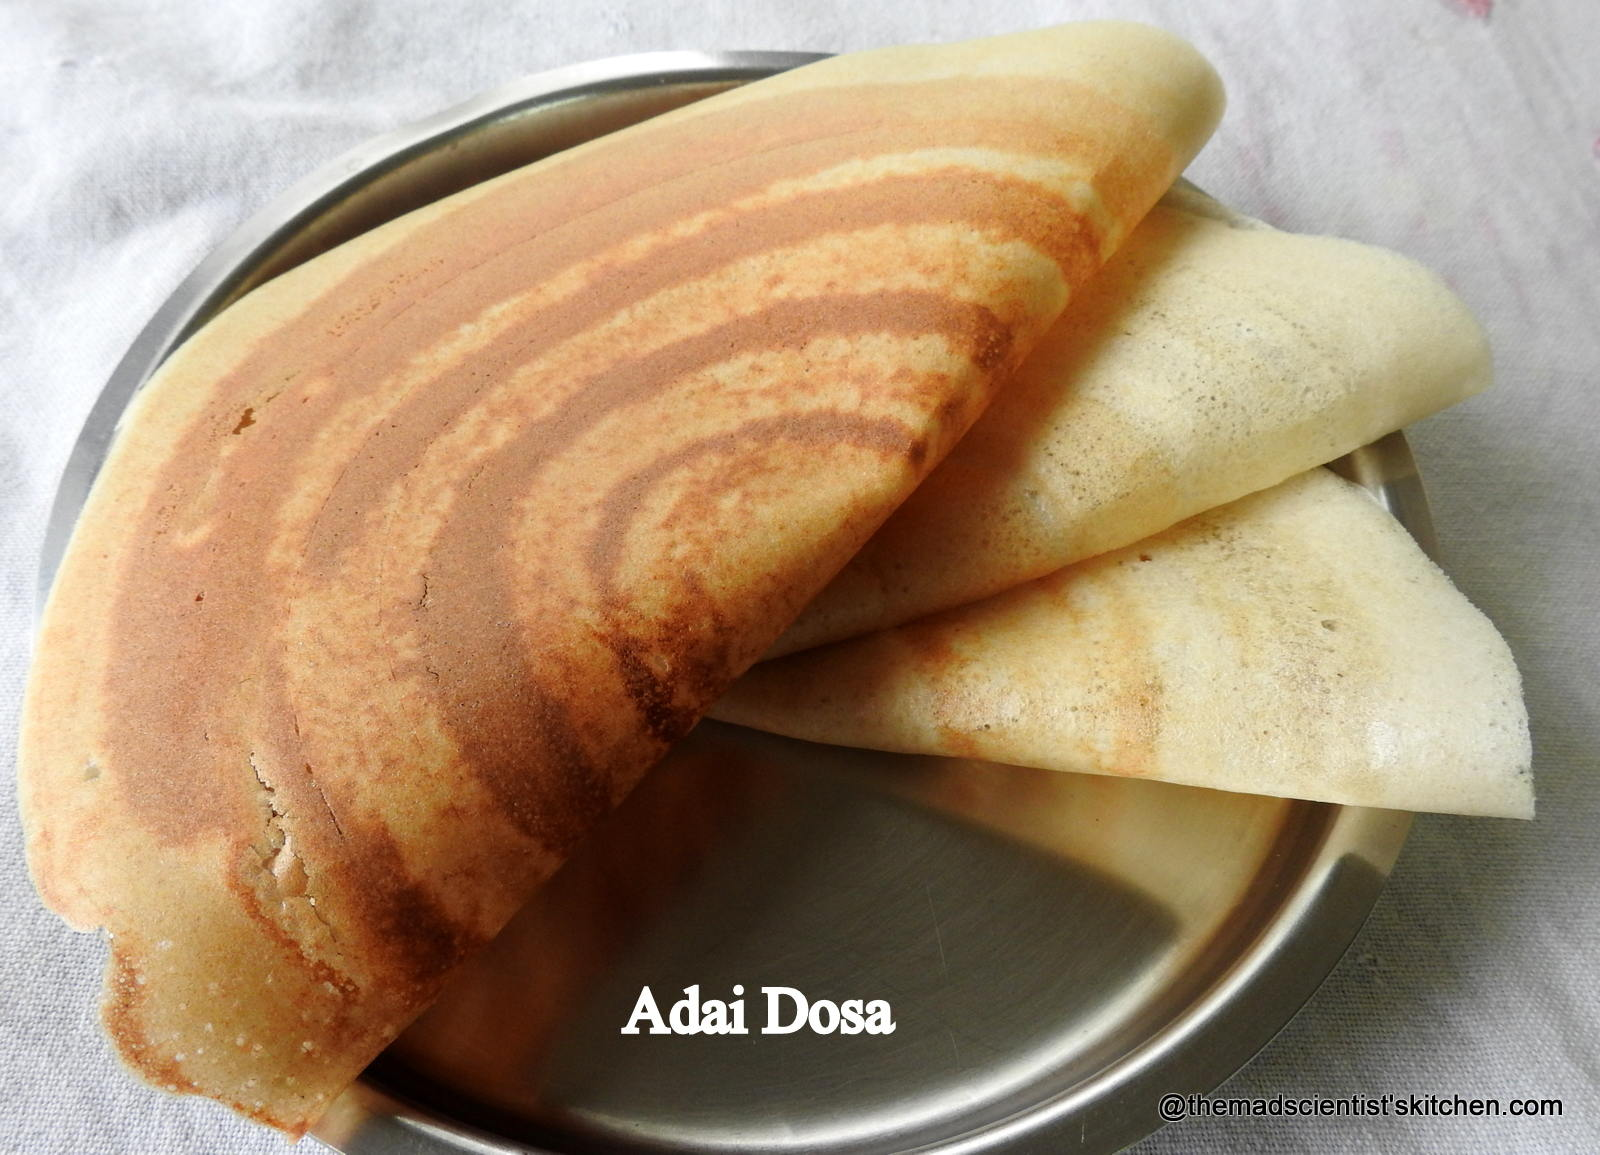 Adai Recipe/Adai Dosa Recipe (Indian Lentil Crepes)